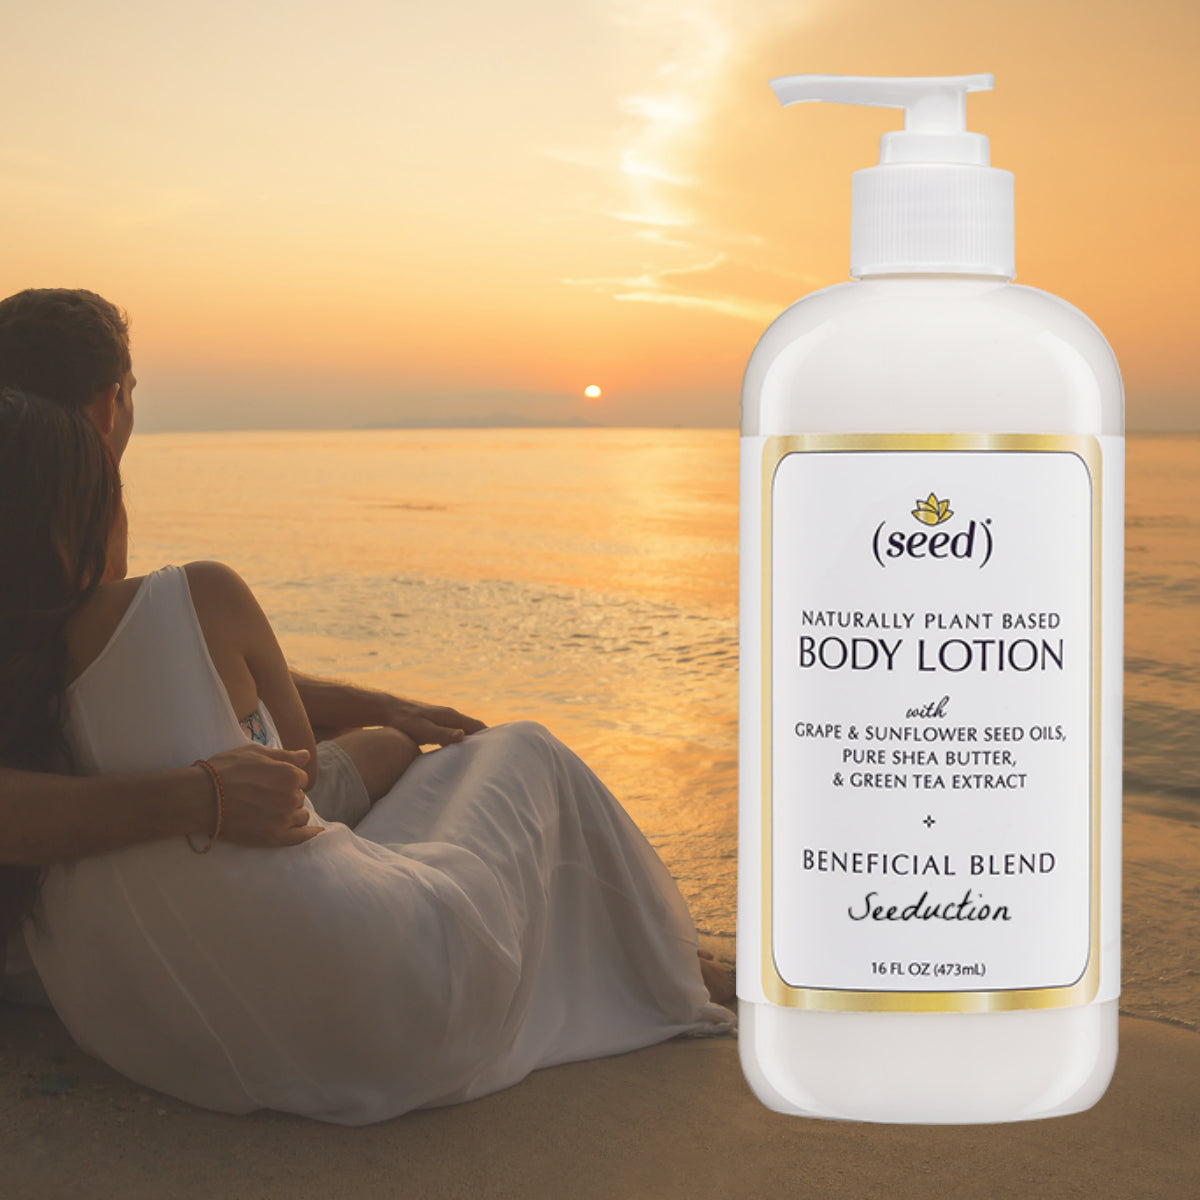 Seed Seeduction Blend Body Lotion features essential oils of ylang ylang, patchouli, and ginger